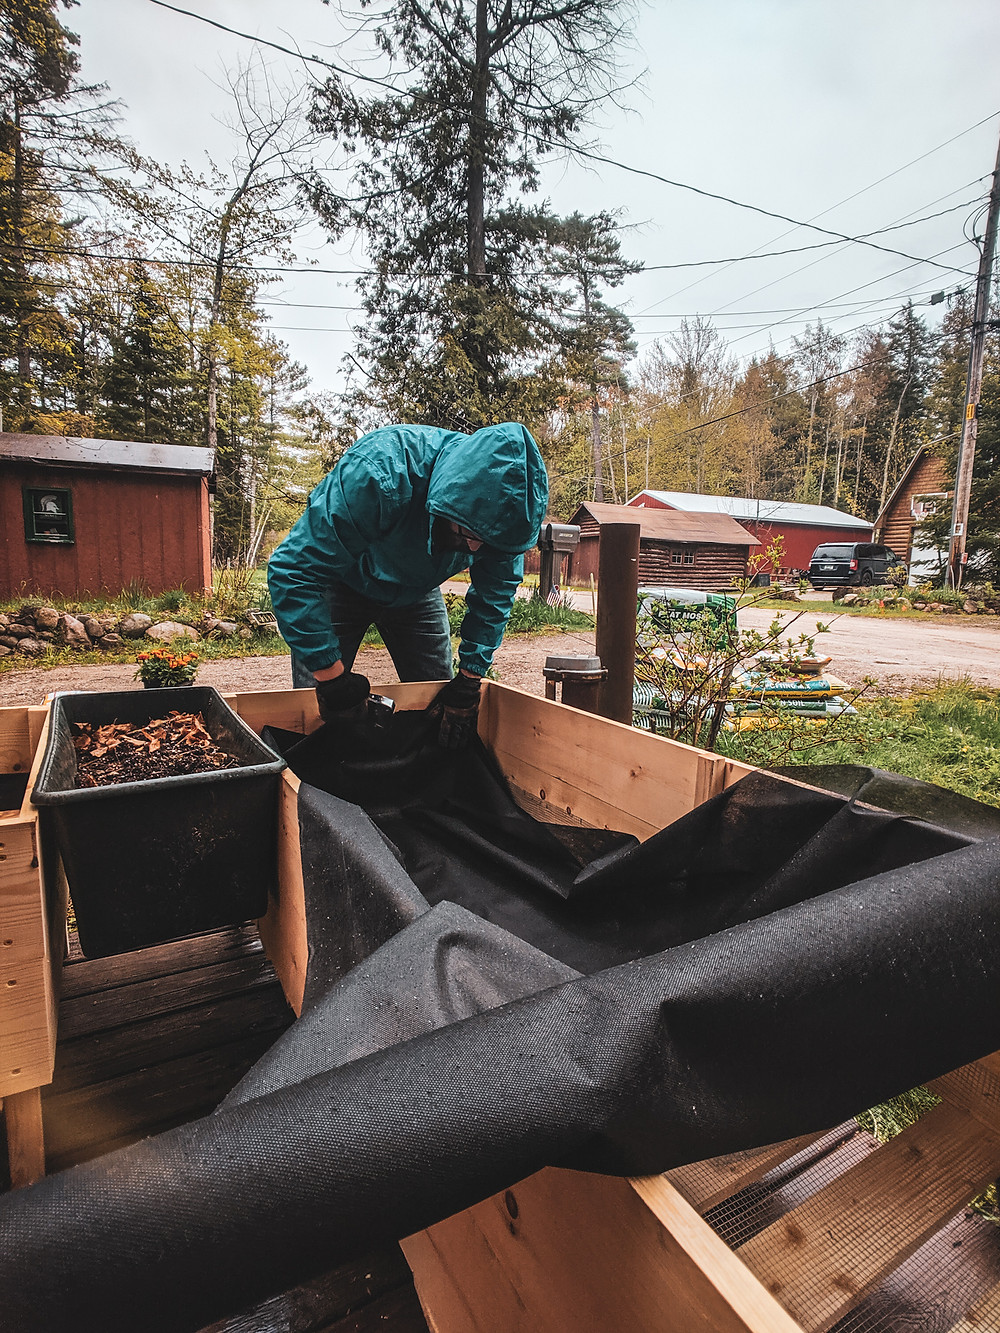 Attaching the weed control fabric to our DIY raised garden beds in Northern Michigan designed by Steph Castelein at the Each Day Slow blog.